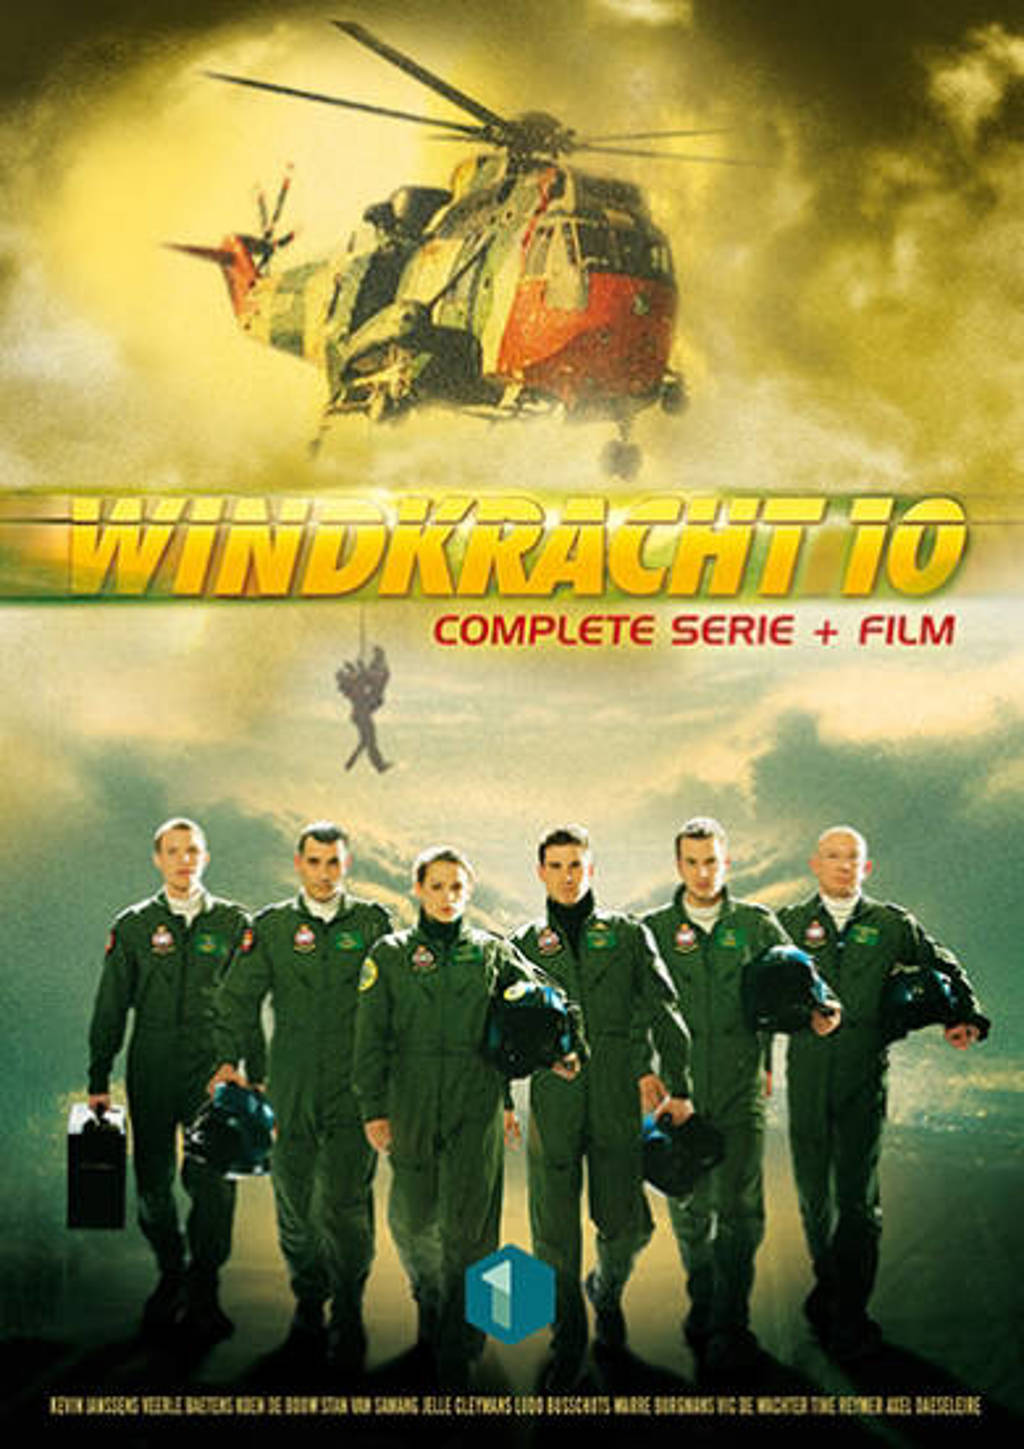 Windkracht 10 - Complete collection (+film) (DVD)